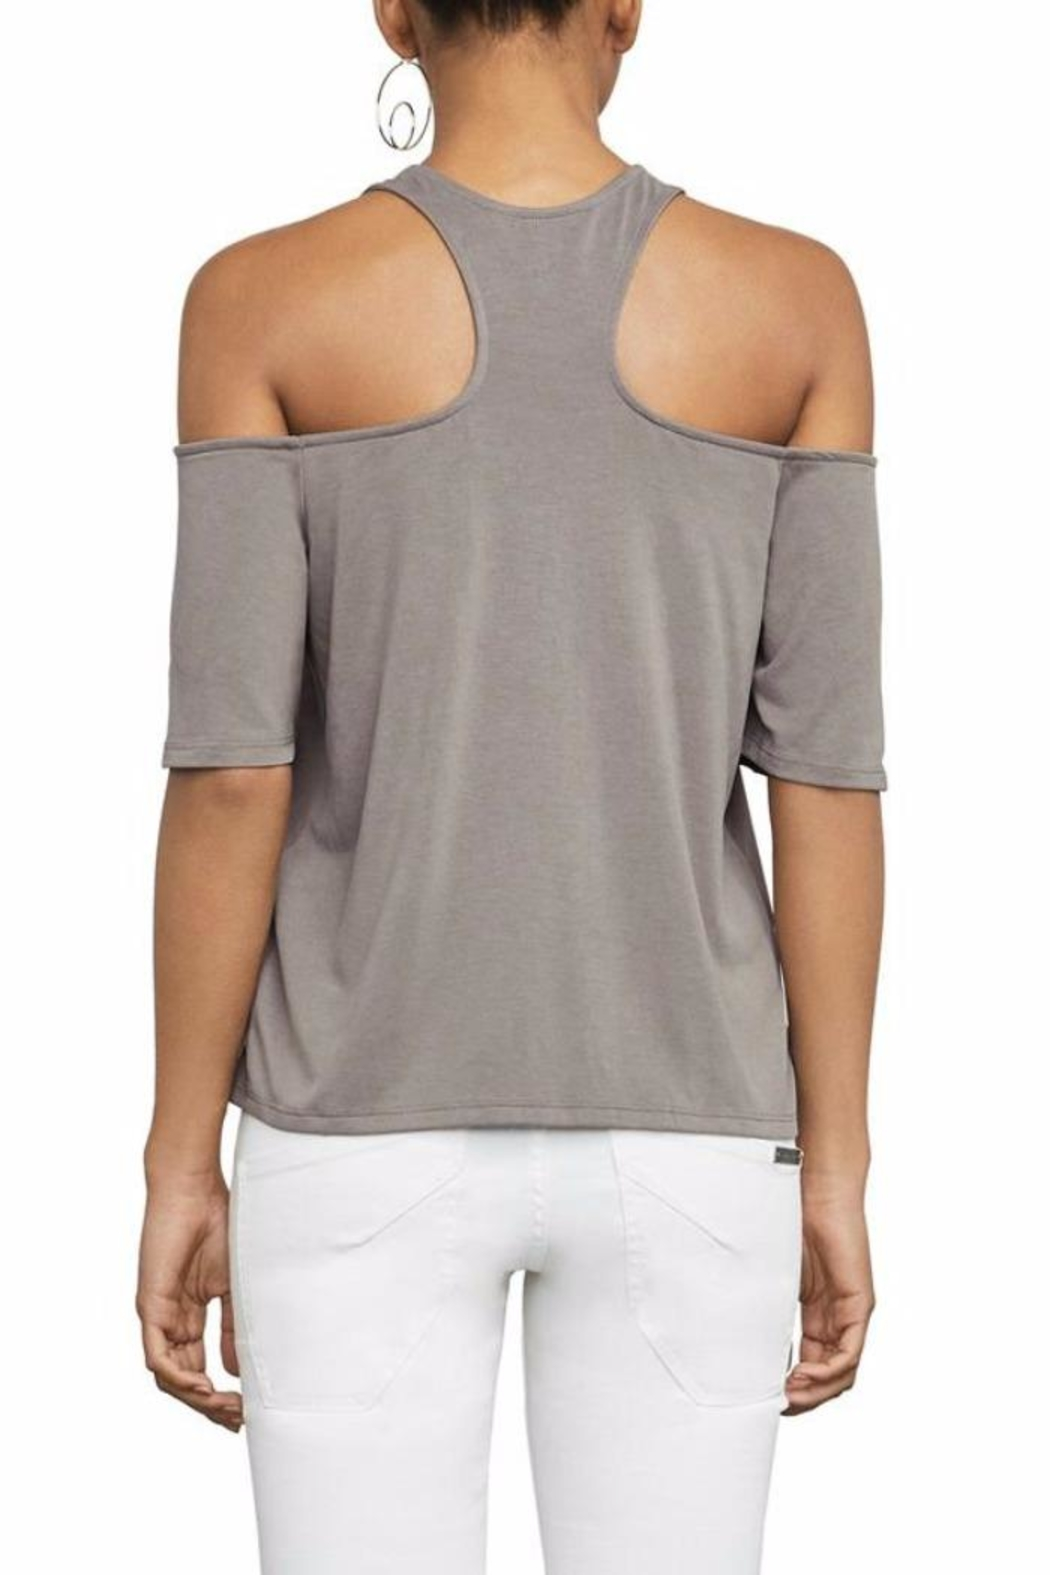 BCBG Max Azria Kelsey Cold Shoulder Top - Front Full Image